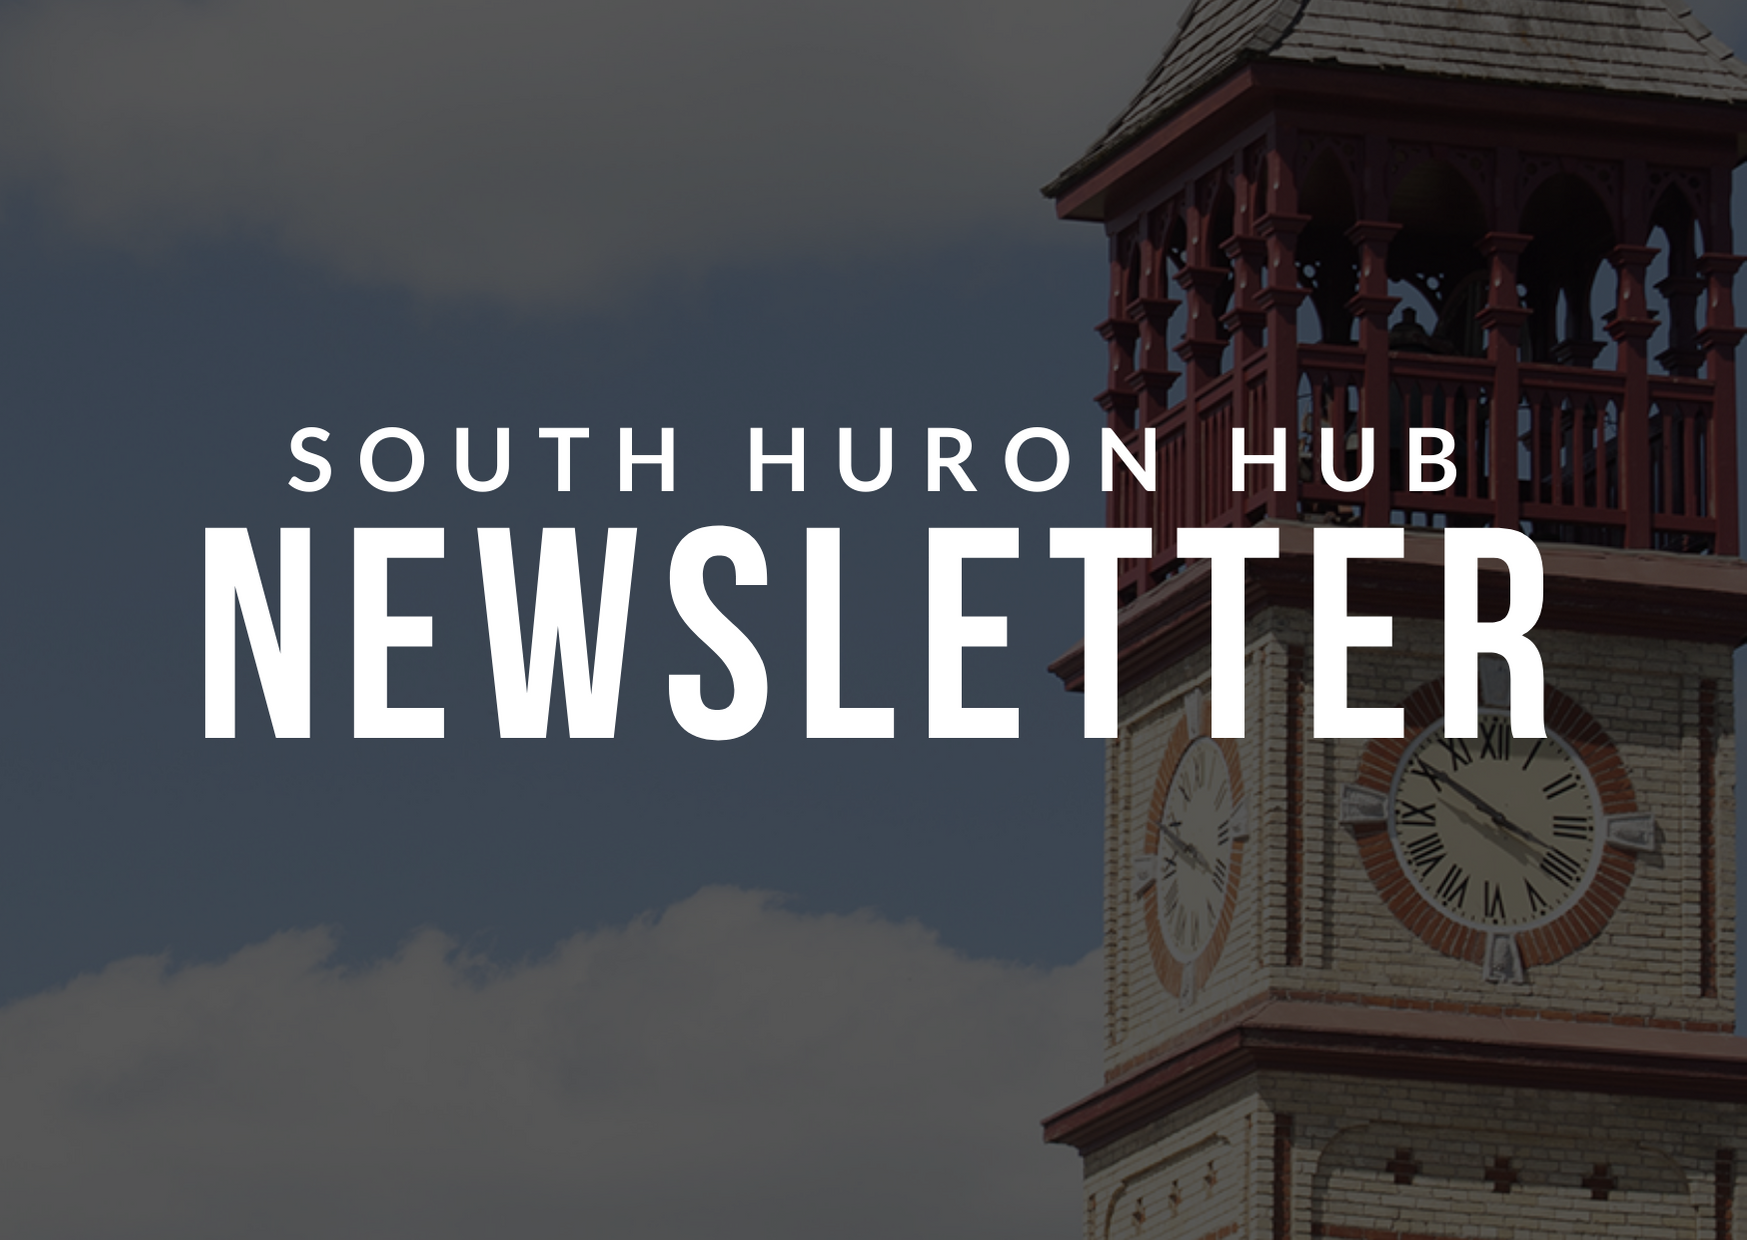 South Huron Hub Newsletter